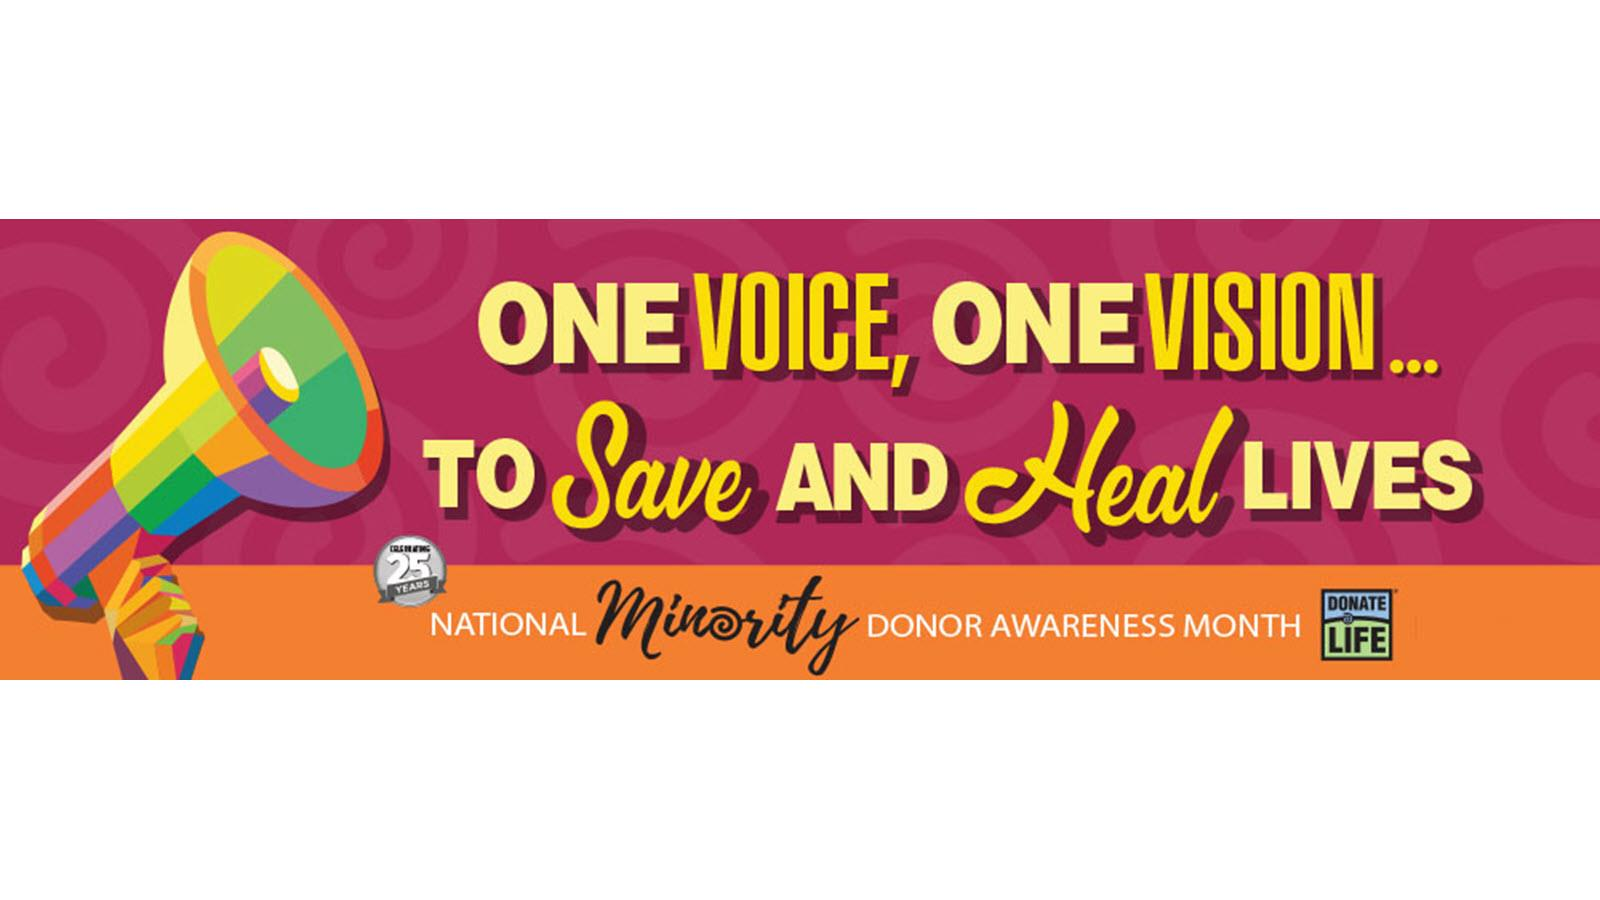 One voice, one vision to save and heal lives - National Minority Donor Awareness Month